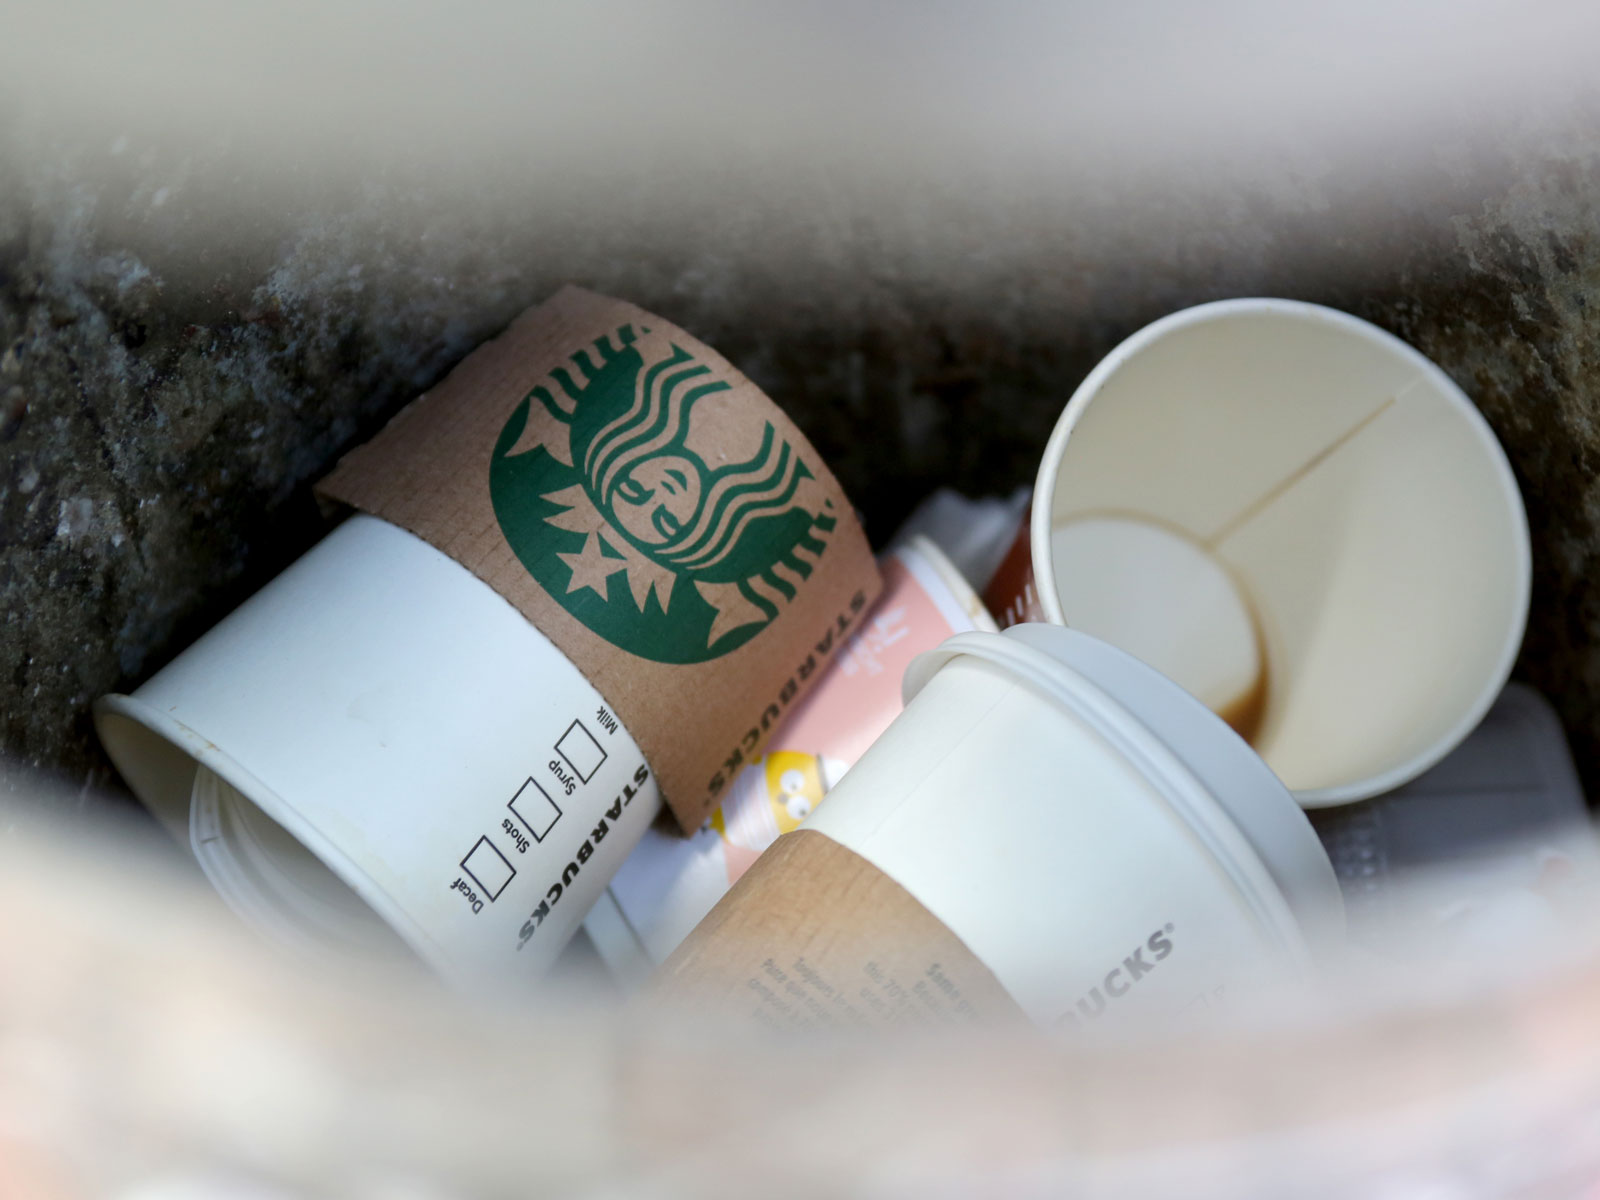 Contrary to Popular Belief, Starbucks Cups Can Be Recycled… If Sent to the Right Facility